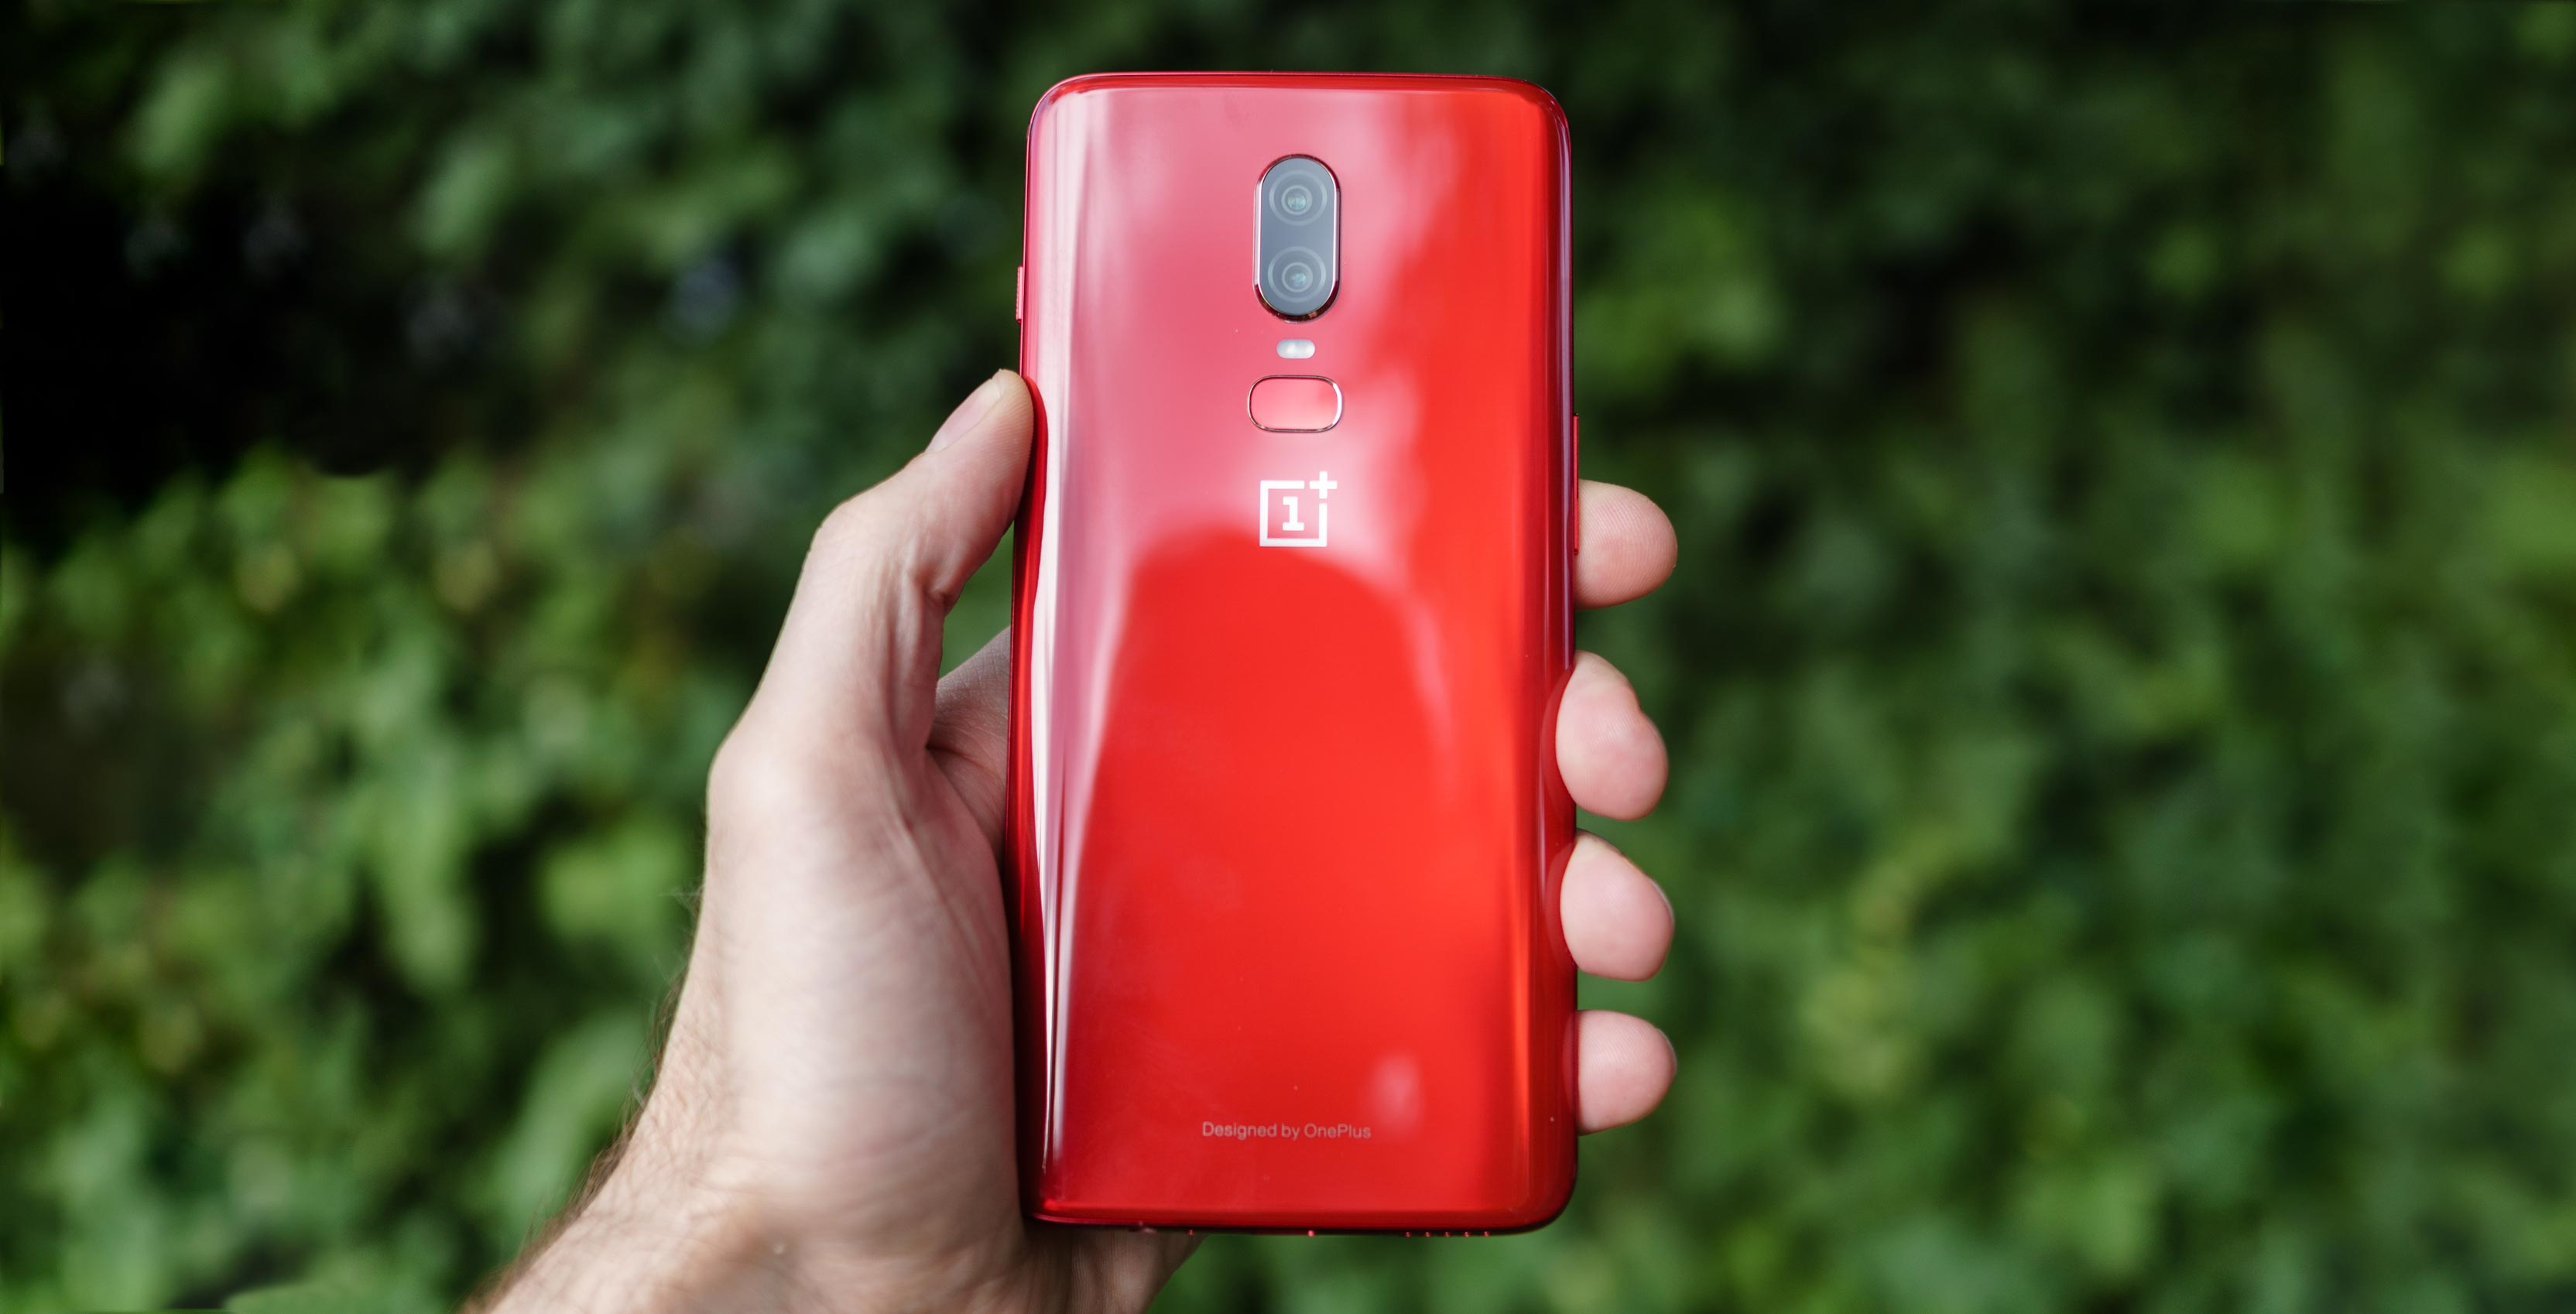 OnePlus 6T releasing with Night Mode for low-light photography